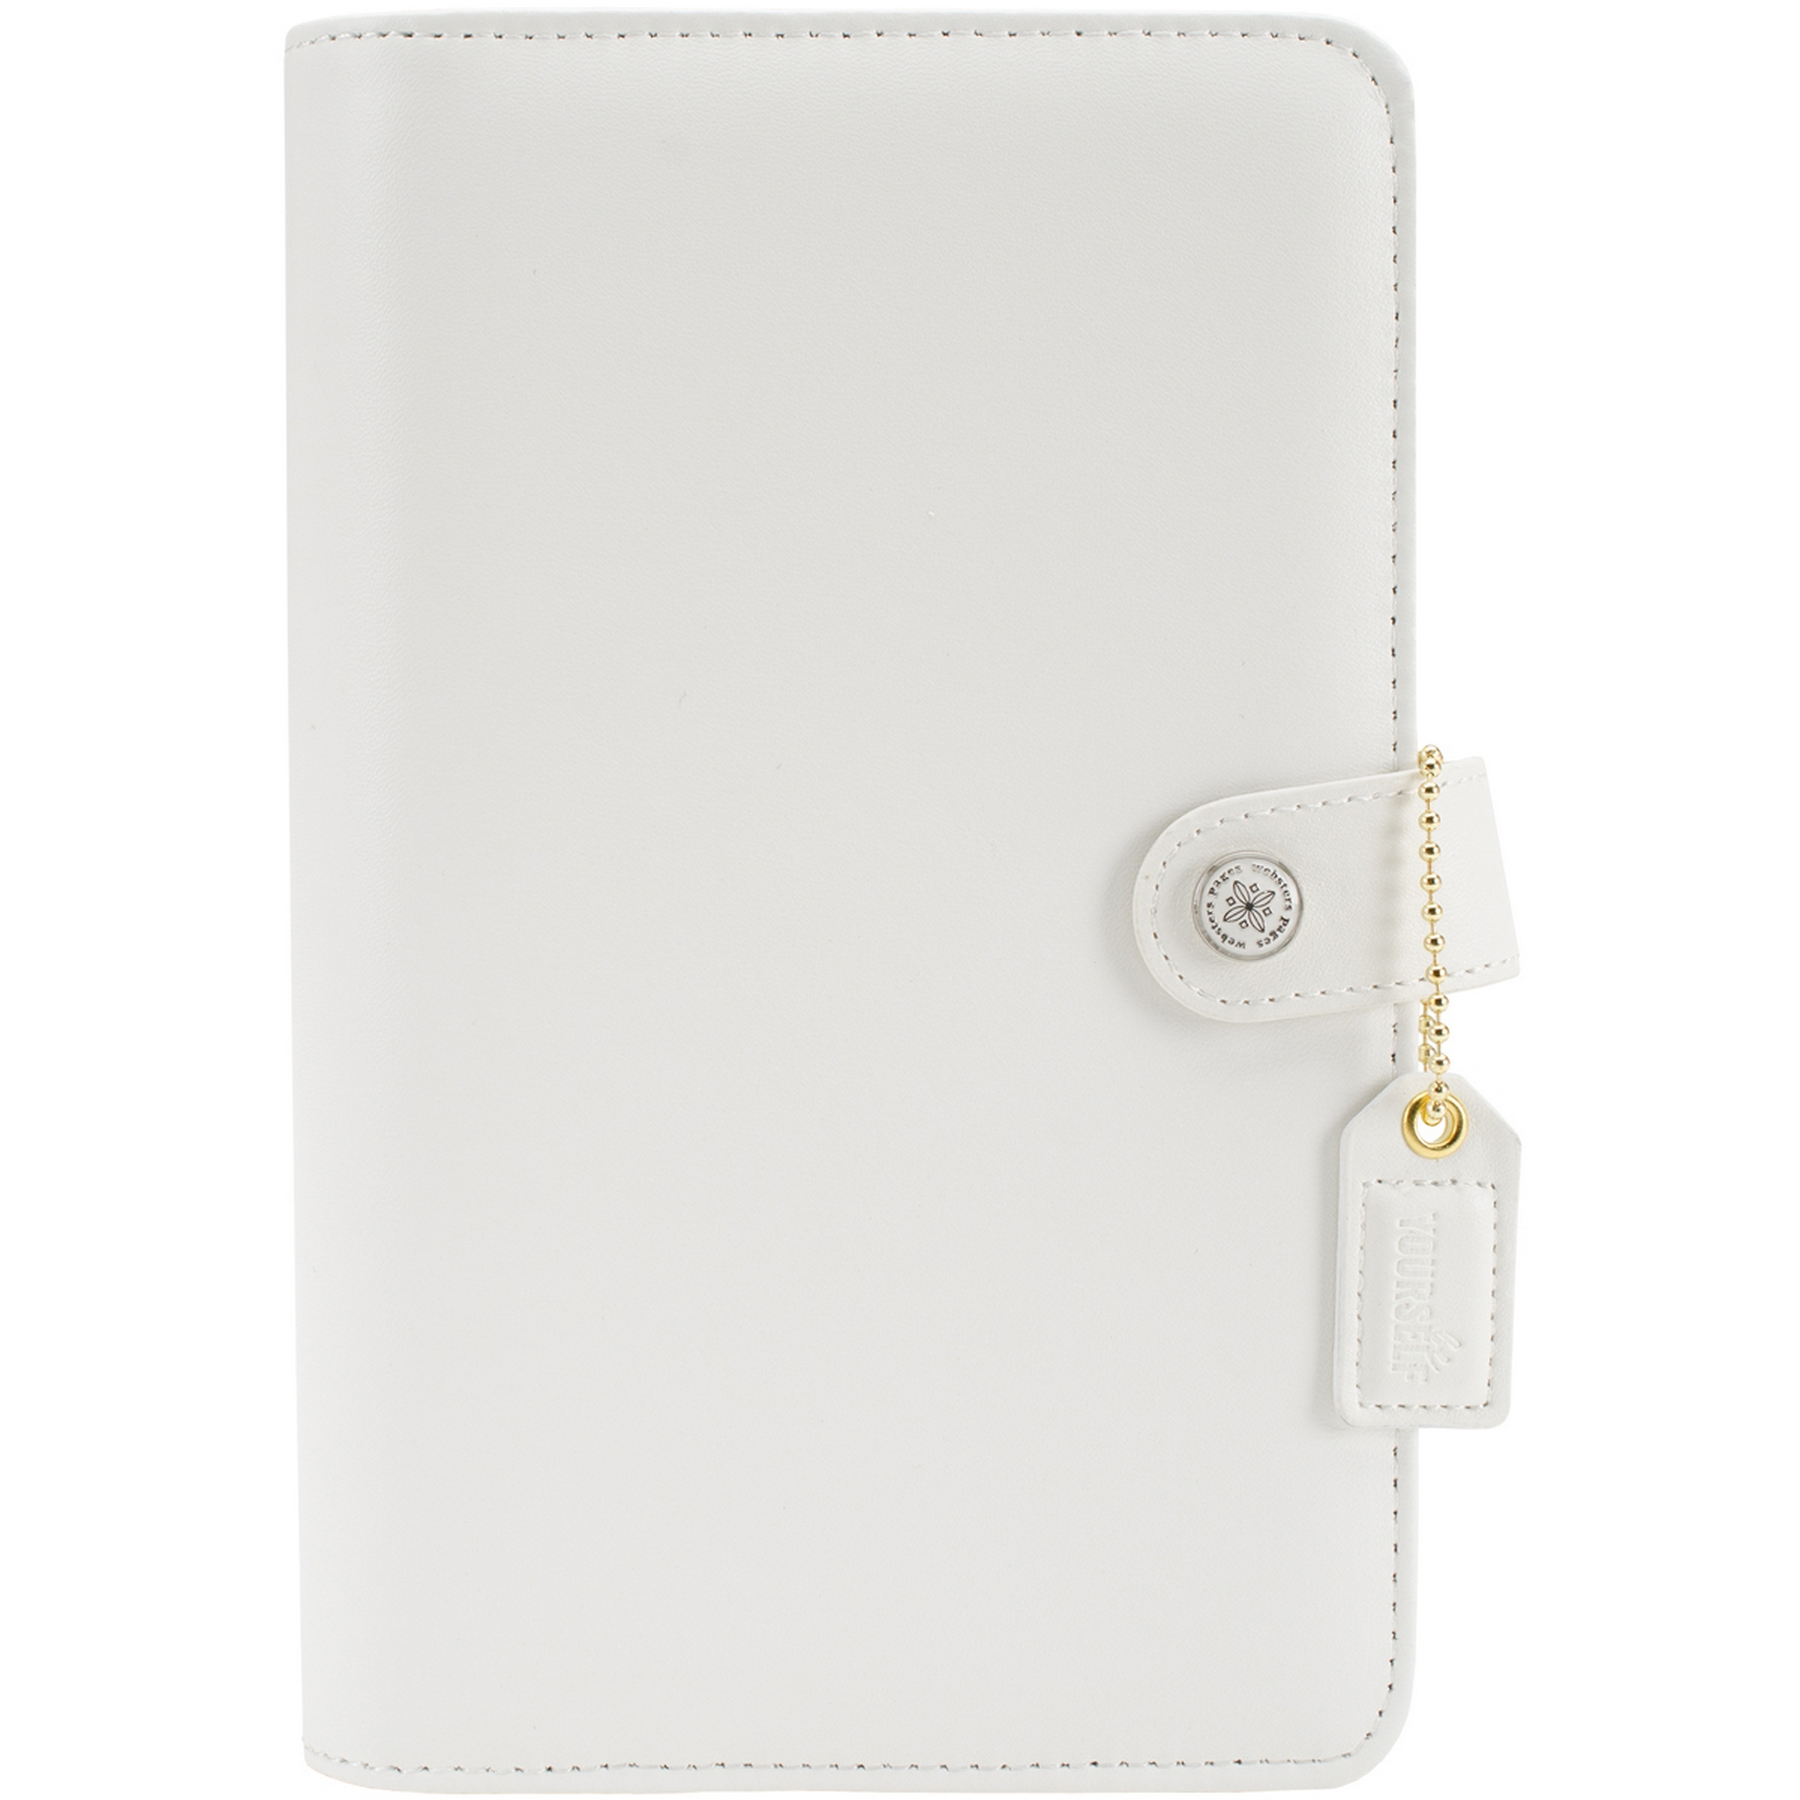 "Color Crush 179218 Faux Leather Personal Planner Kit 5.5""X8"" White PartNumber: 021V009131276000P KsnValue: 9131276 MfgPartNumber: 179218"